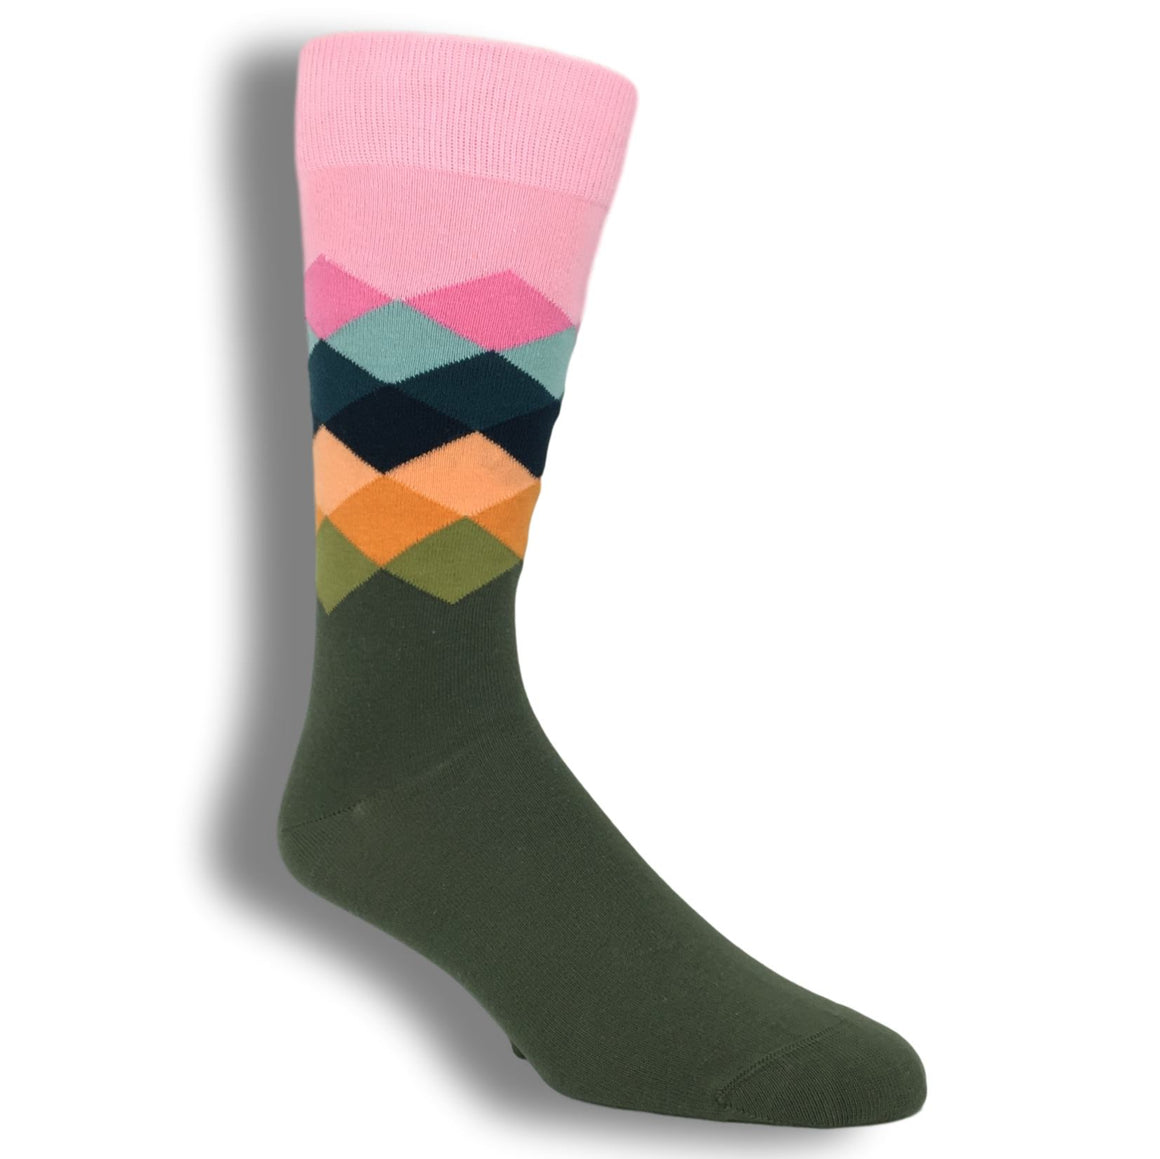 Socks - Pink, Orange, And Brown Faded Diamond Socks By Happy Socks